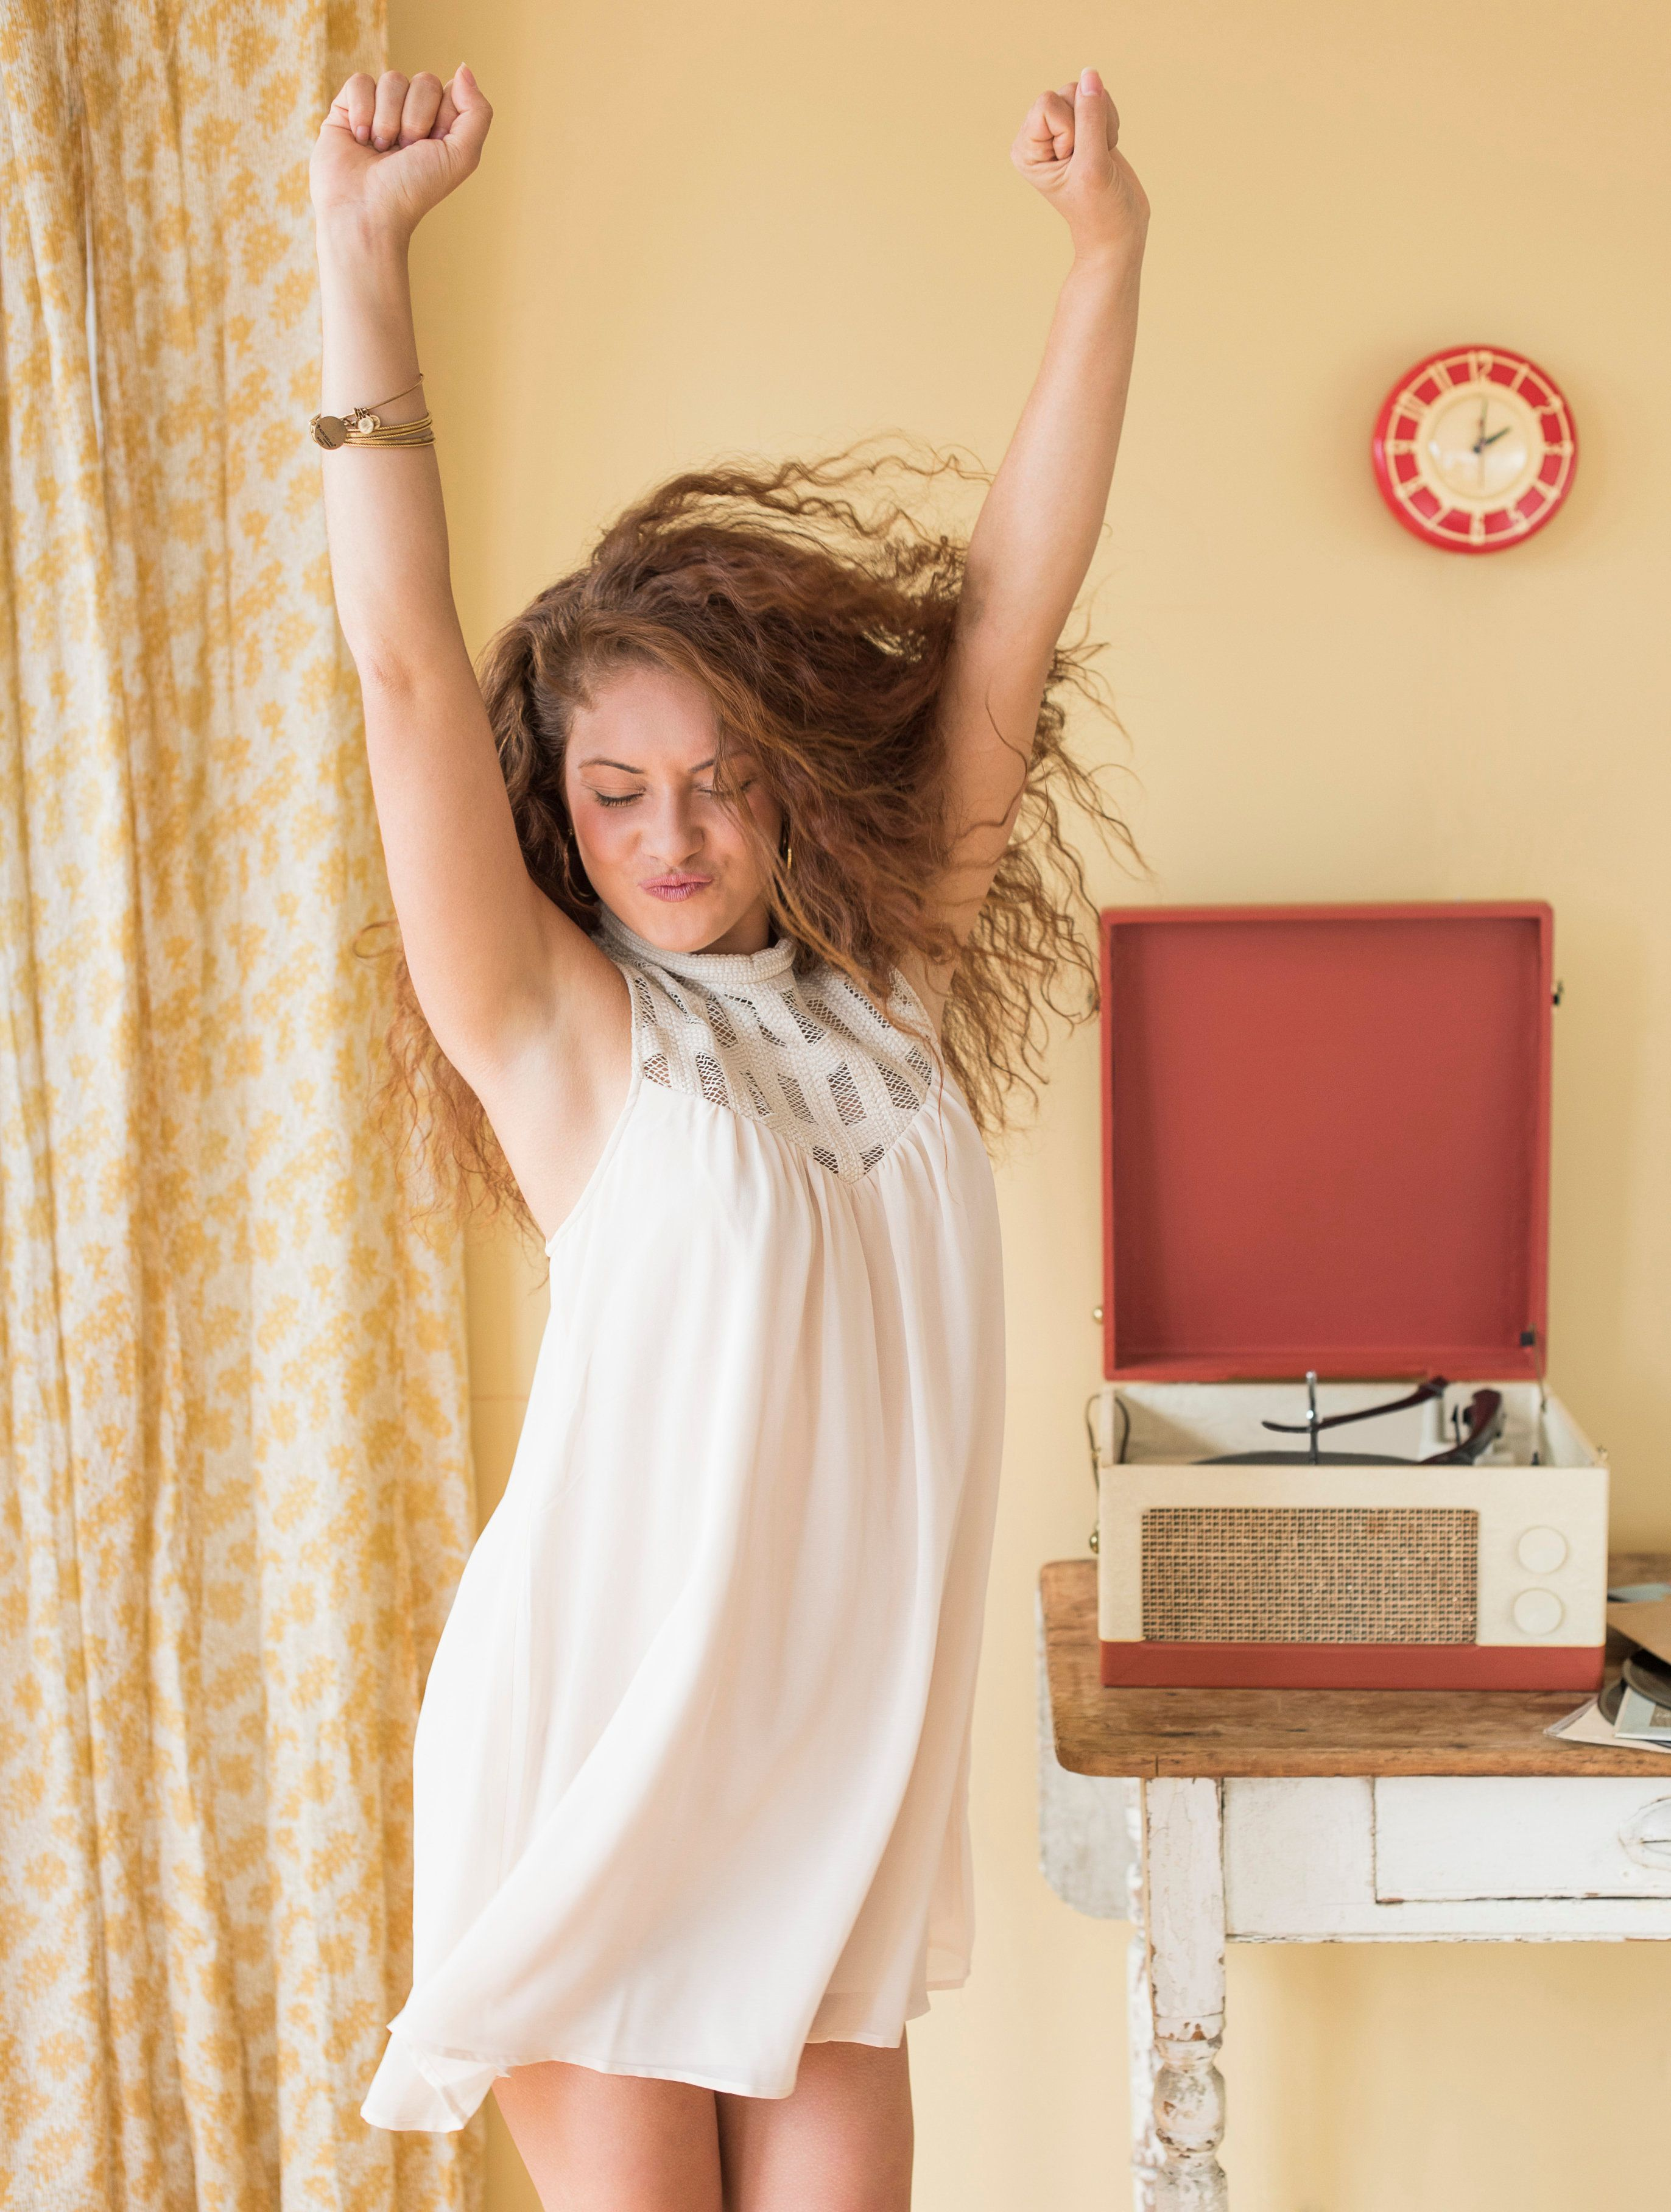 USA, New Jersey, Jersey City, Portrait of woman dancing happily in room